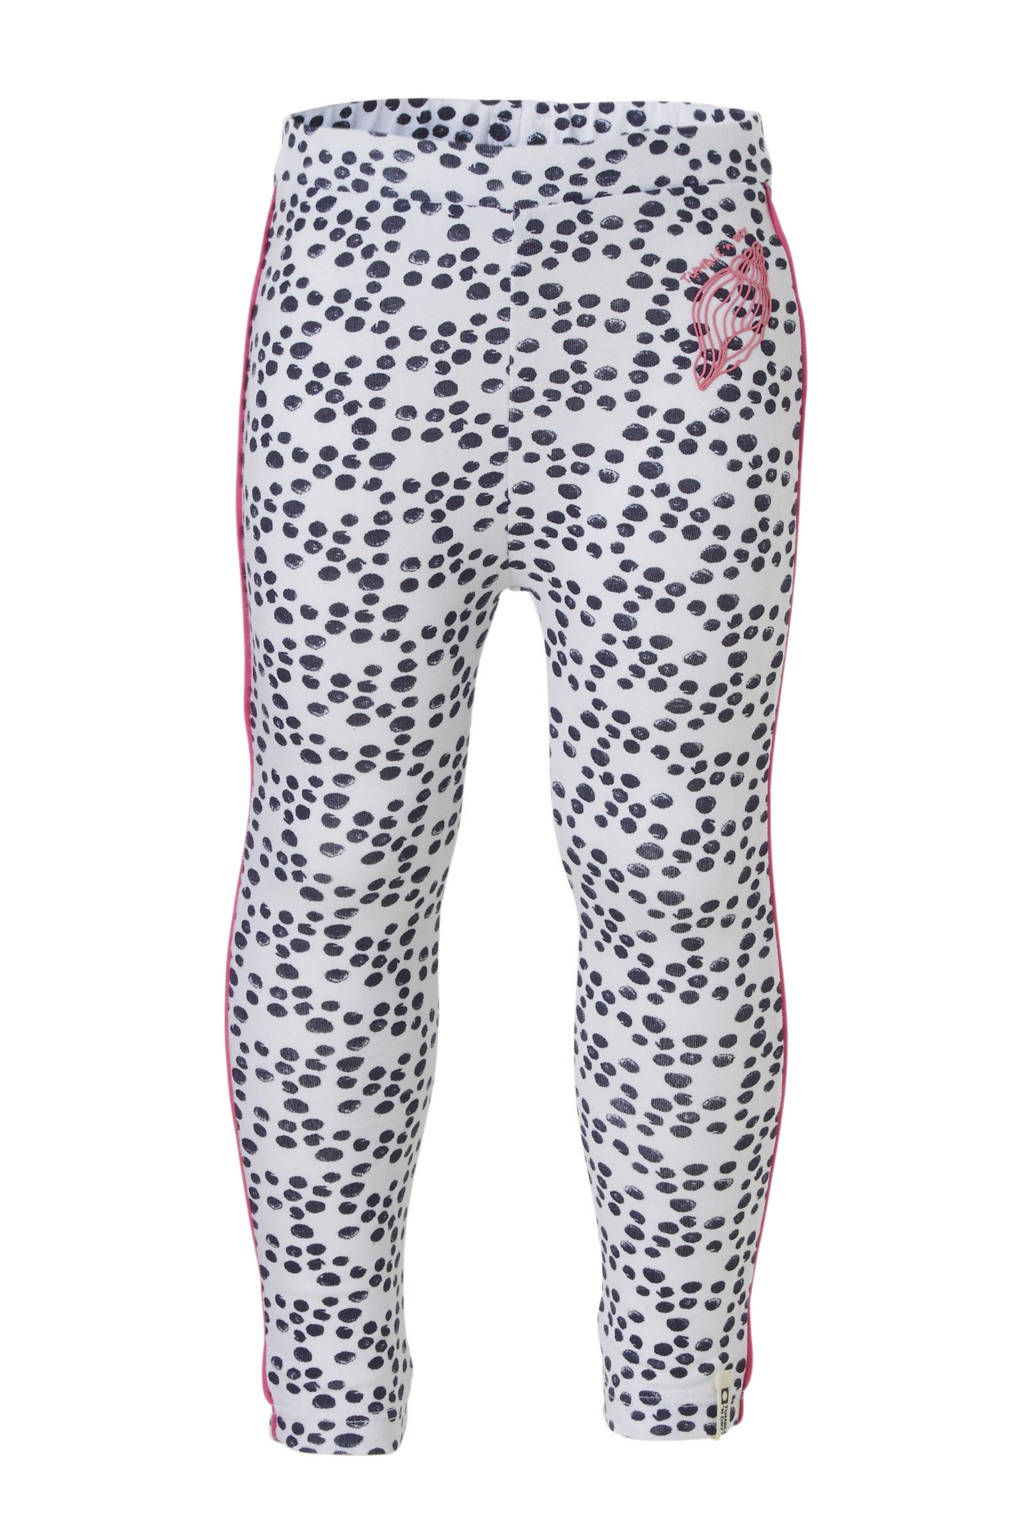 Tumble 'n Dry Lo legging met all over print wit, PAPER WHITE